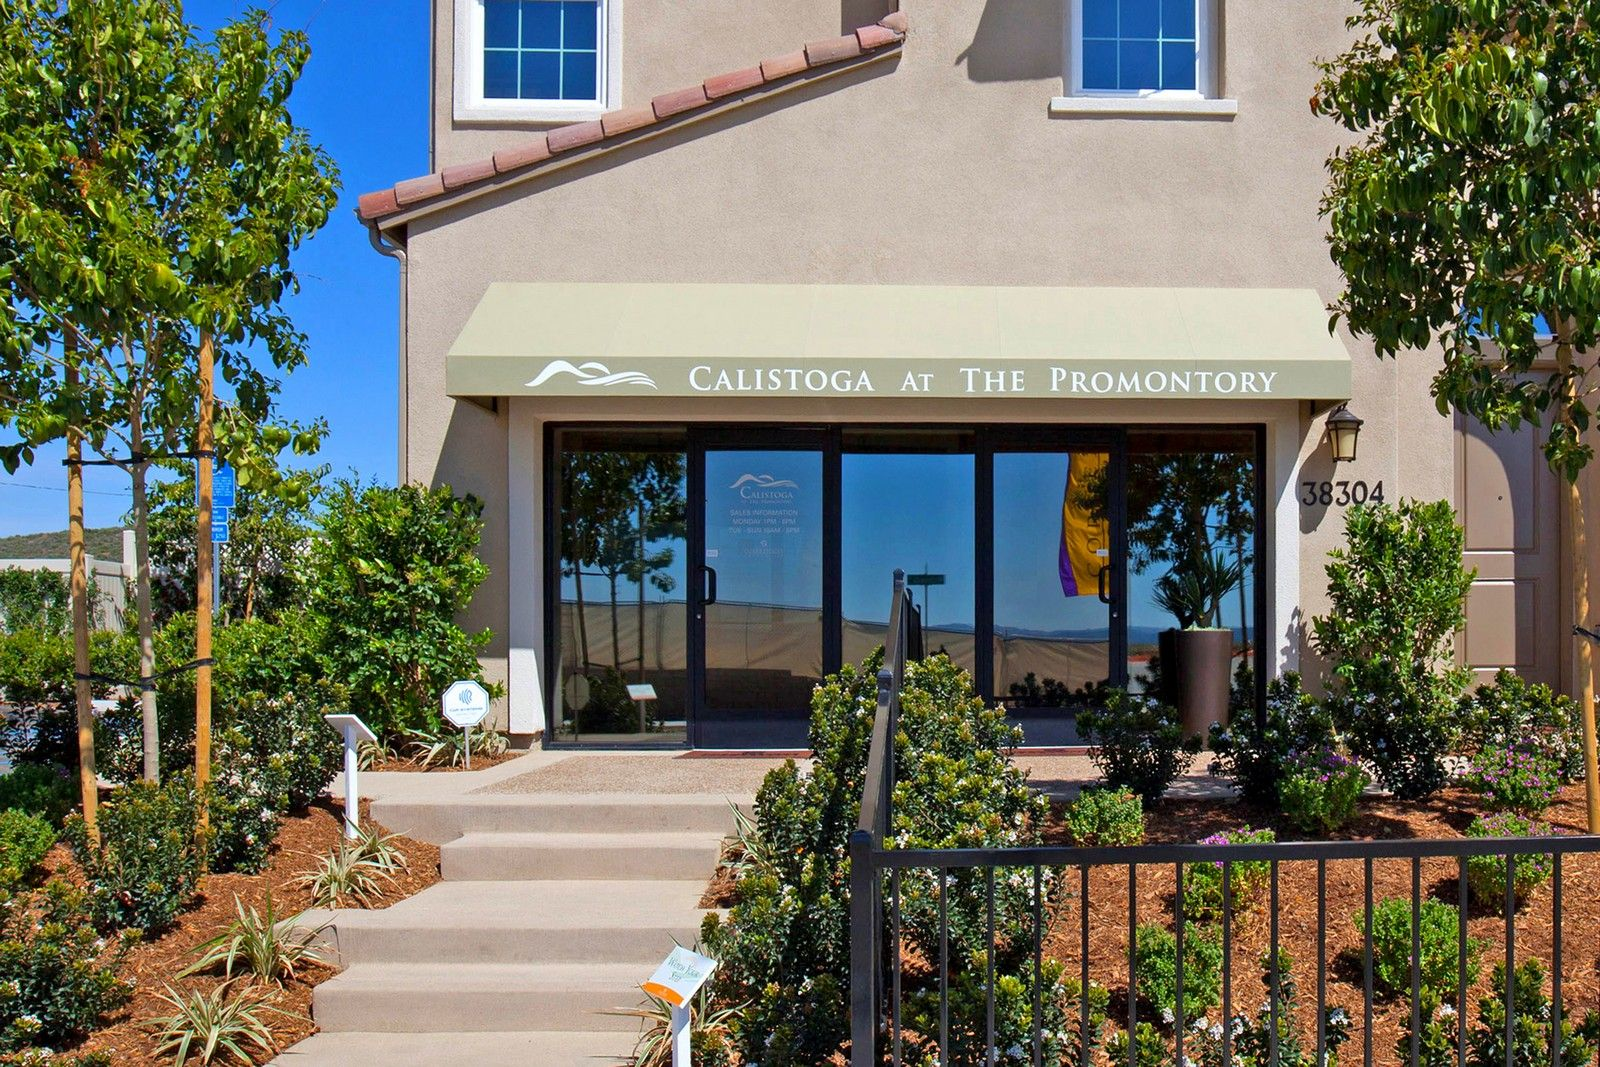 'Calistoga at the Promontory' by Calistoga at the Promontory in Riverside-San Bernardino